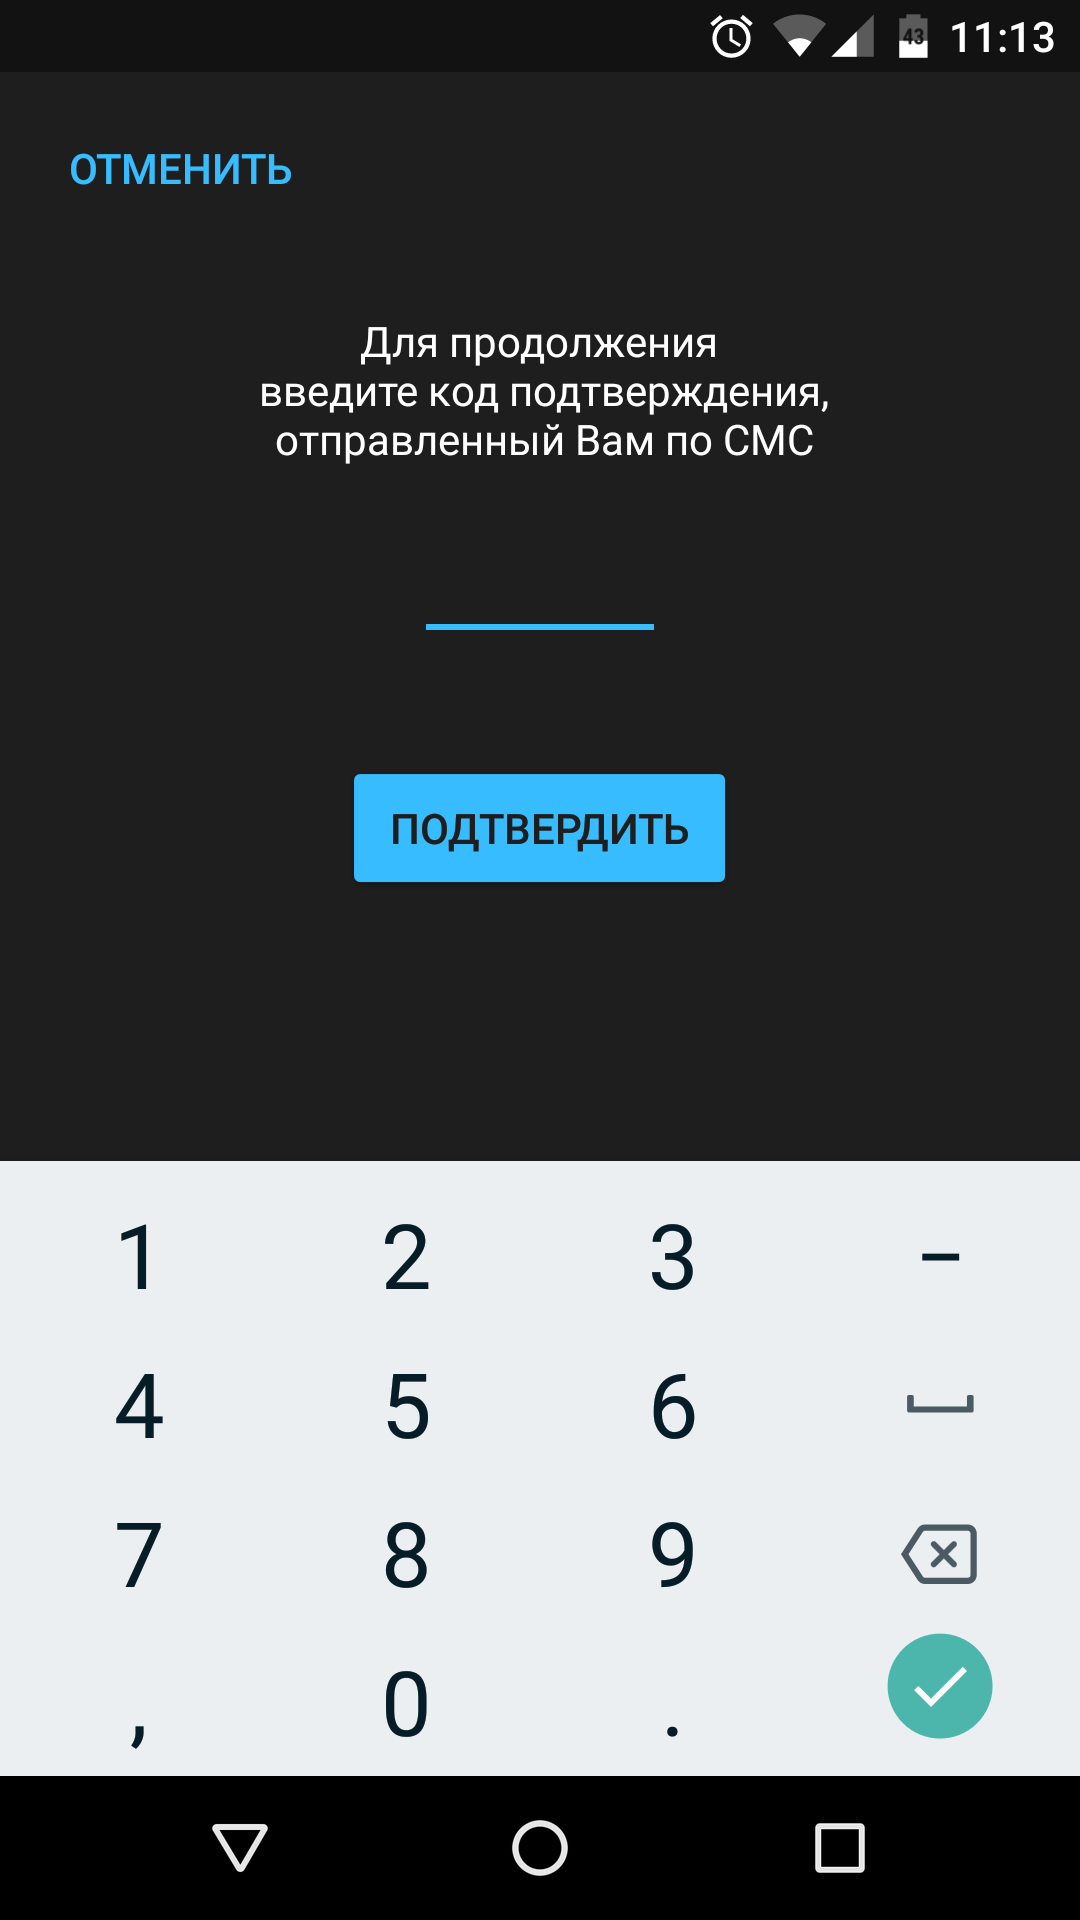 quik_android_x_login_window_02.png